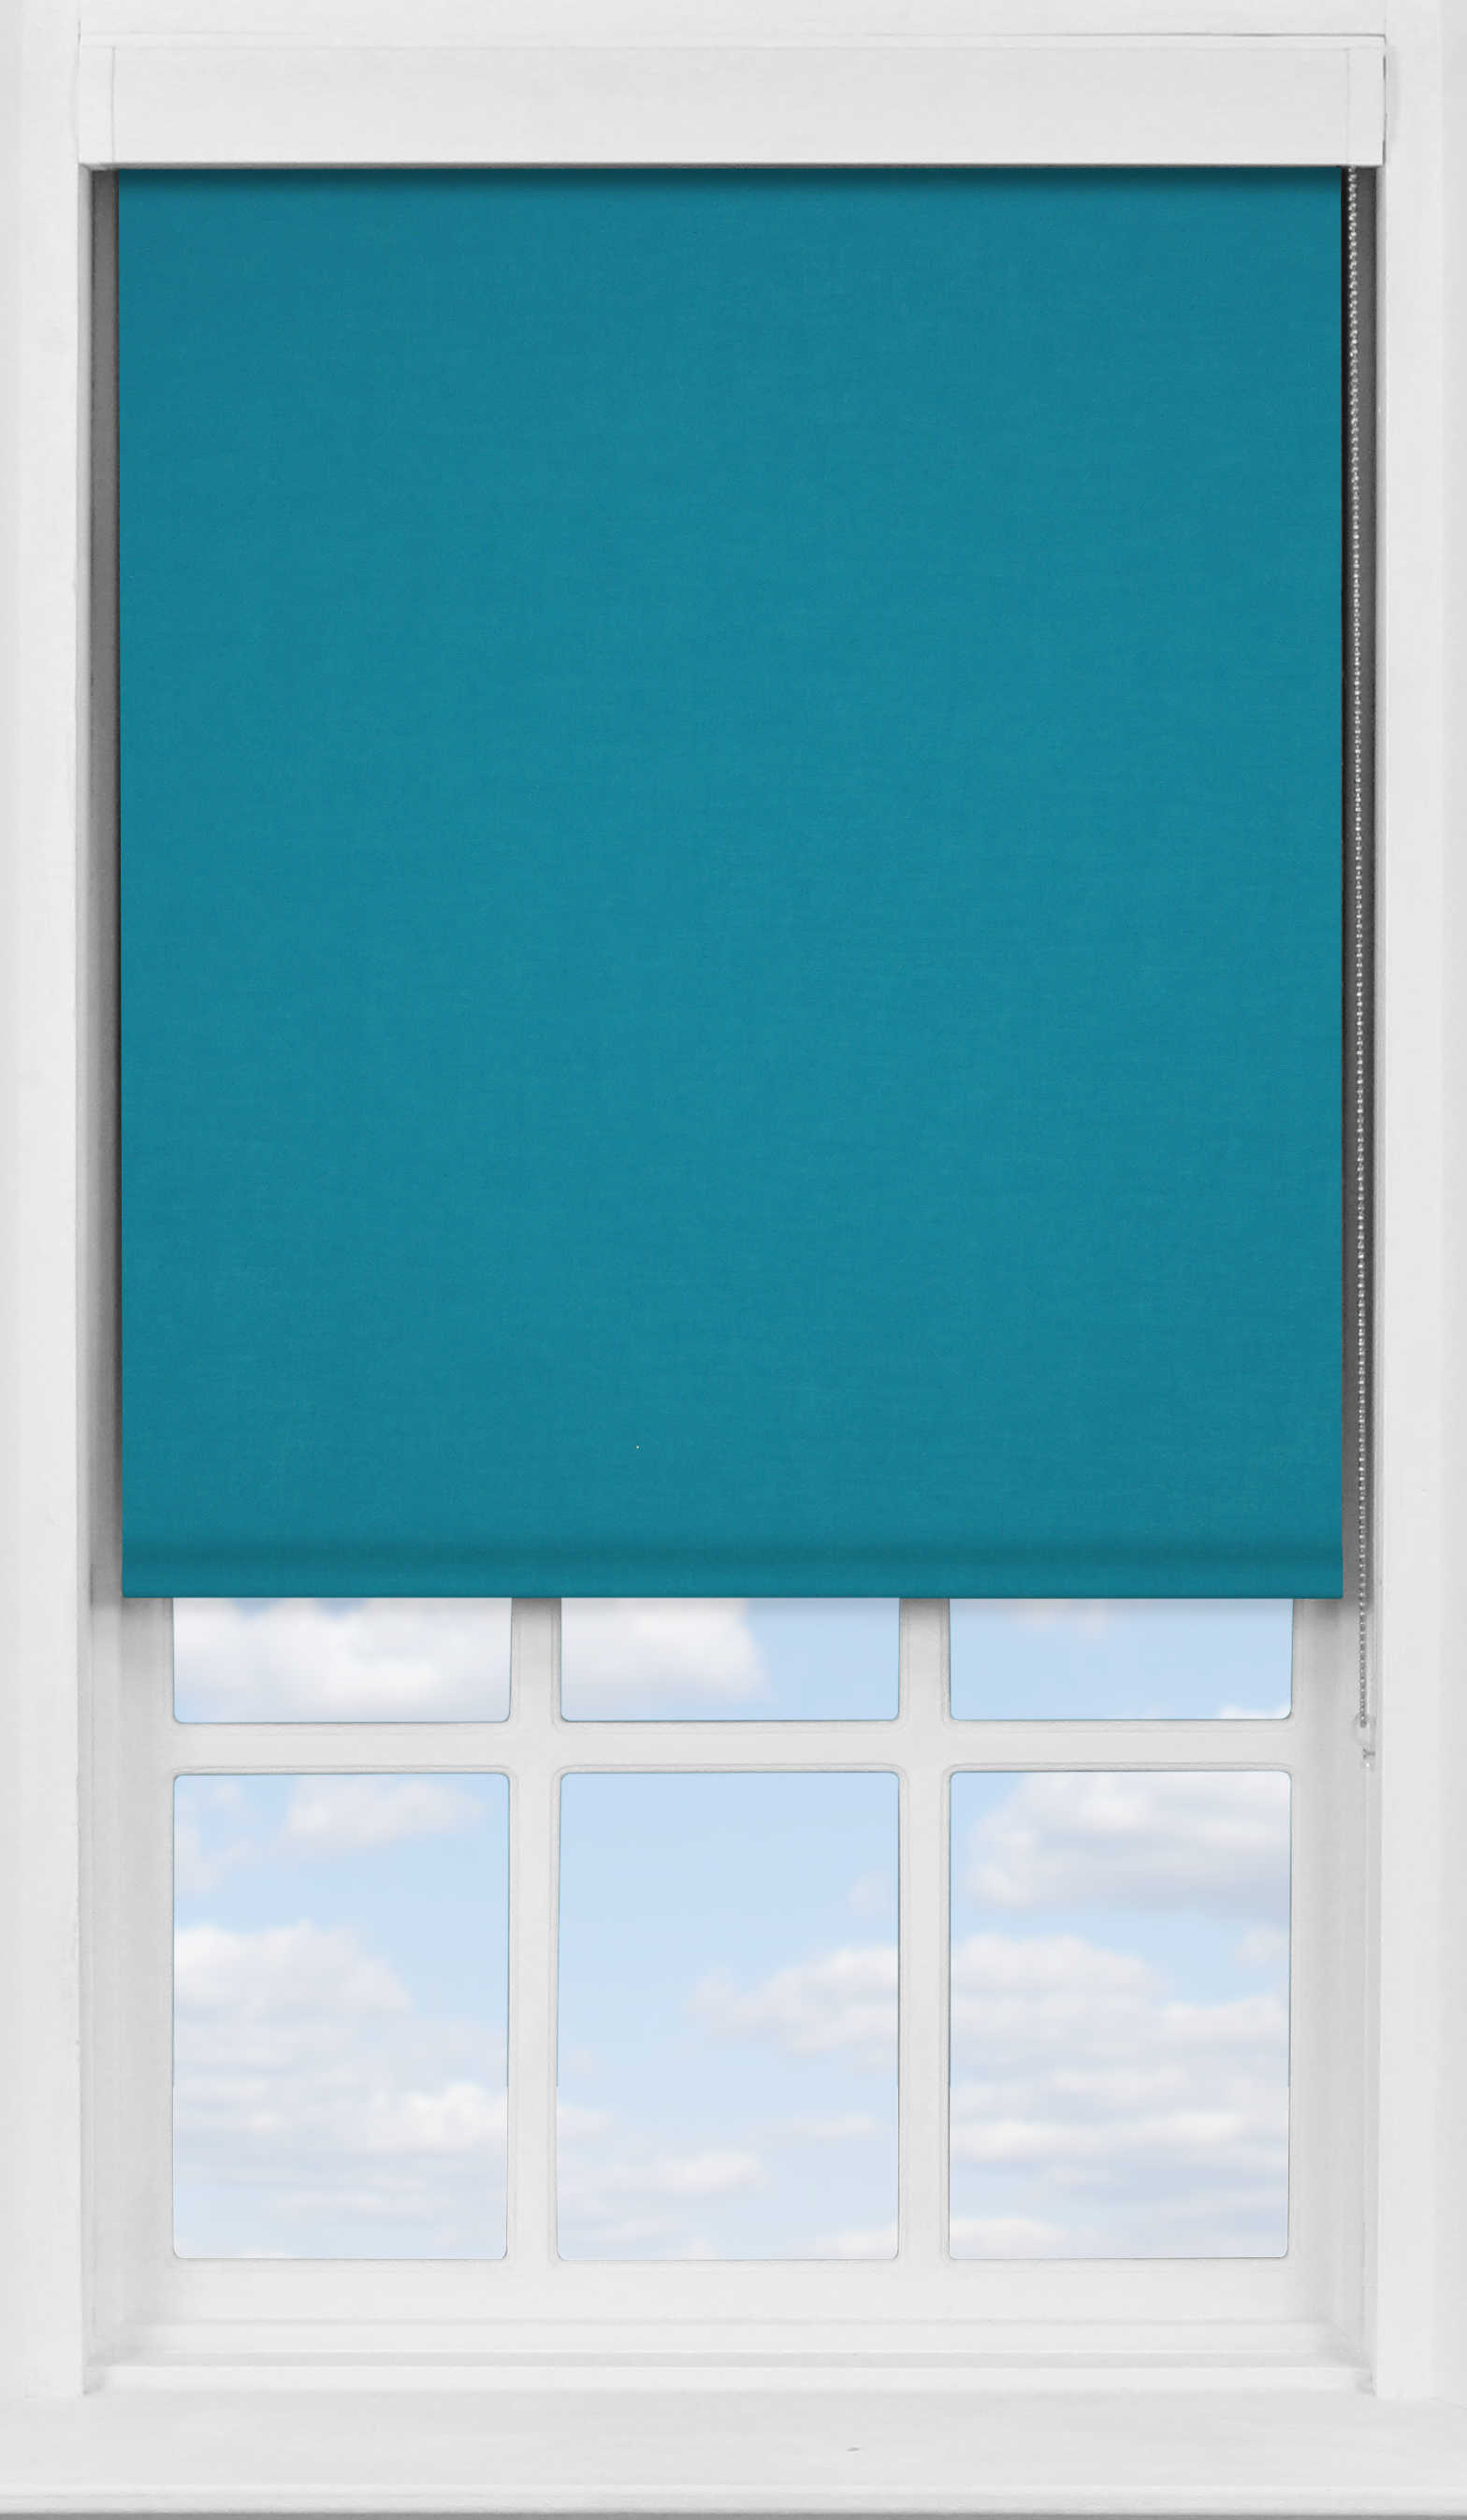 Premium Roller Blind in Marine Blue Translucent